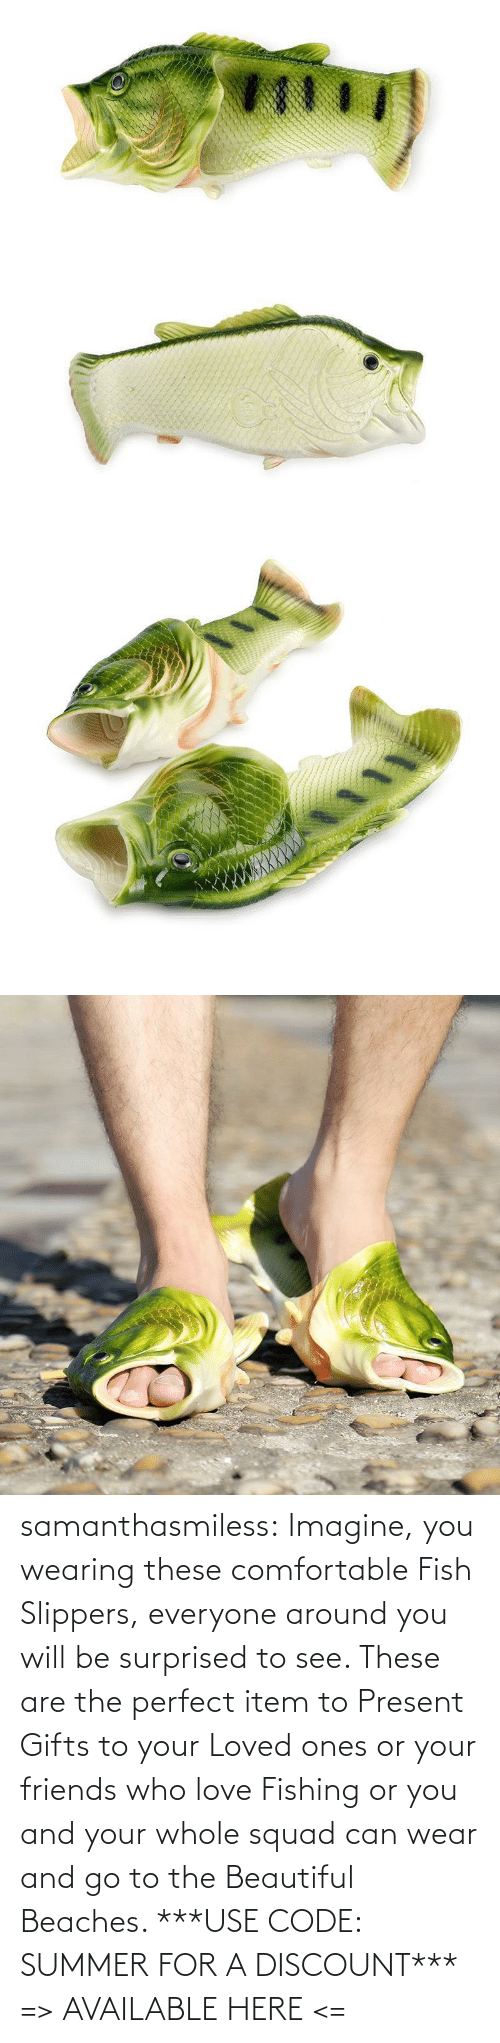 Beautiful, Comfortable, and Friends: samanthasmiless: Imagine, you wearing these comfortable Fish Slippers, everyone around you will be surprised to see. These are the perfect item to Present Gifts to your Loved ones or your friends who love Fishing or you and your whole squad can wear and go to the Beautiful Beaches.  ***USE CODE: SUMMER FOR A DISCOUNT*** => AVAILABLE HERE <=